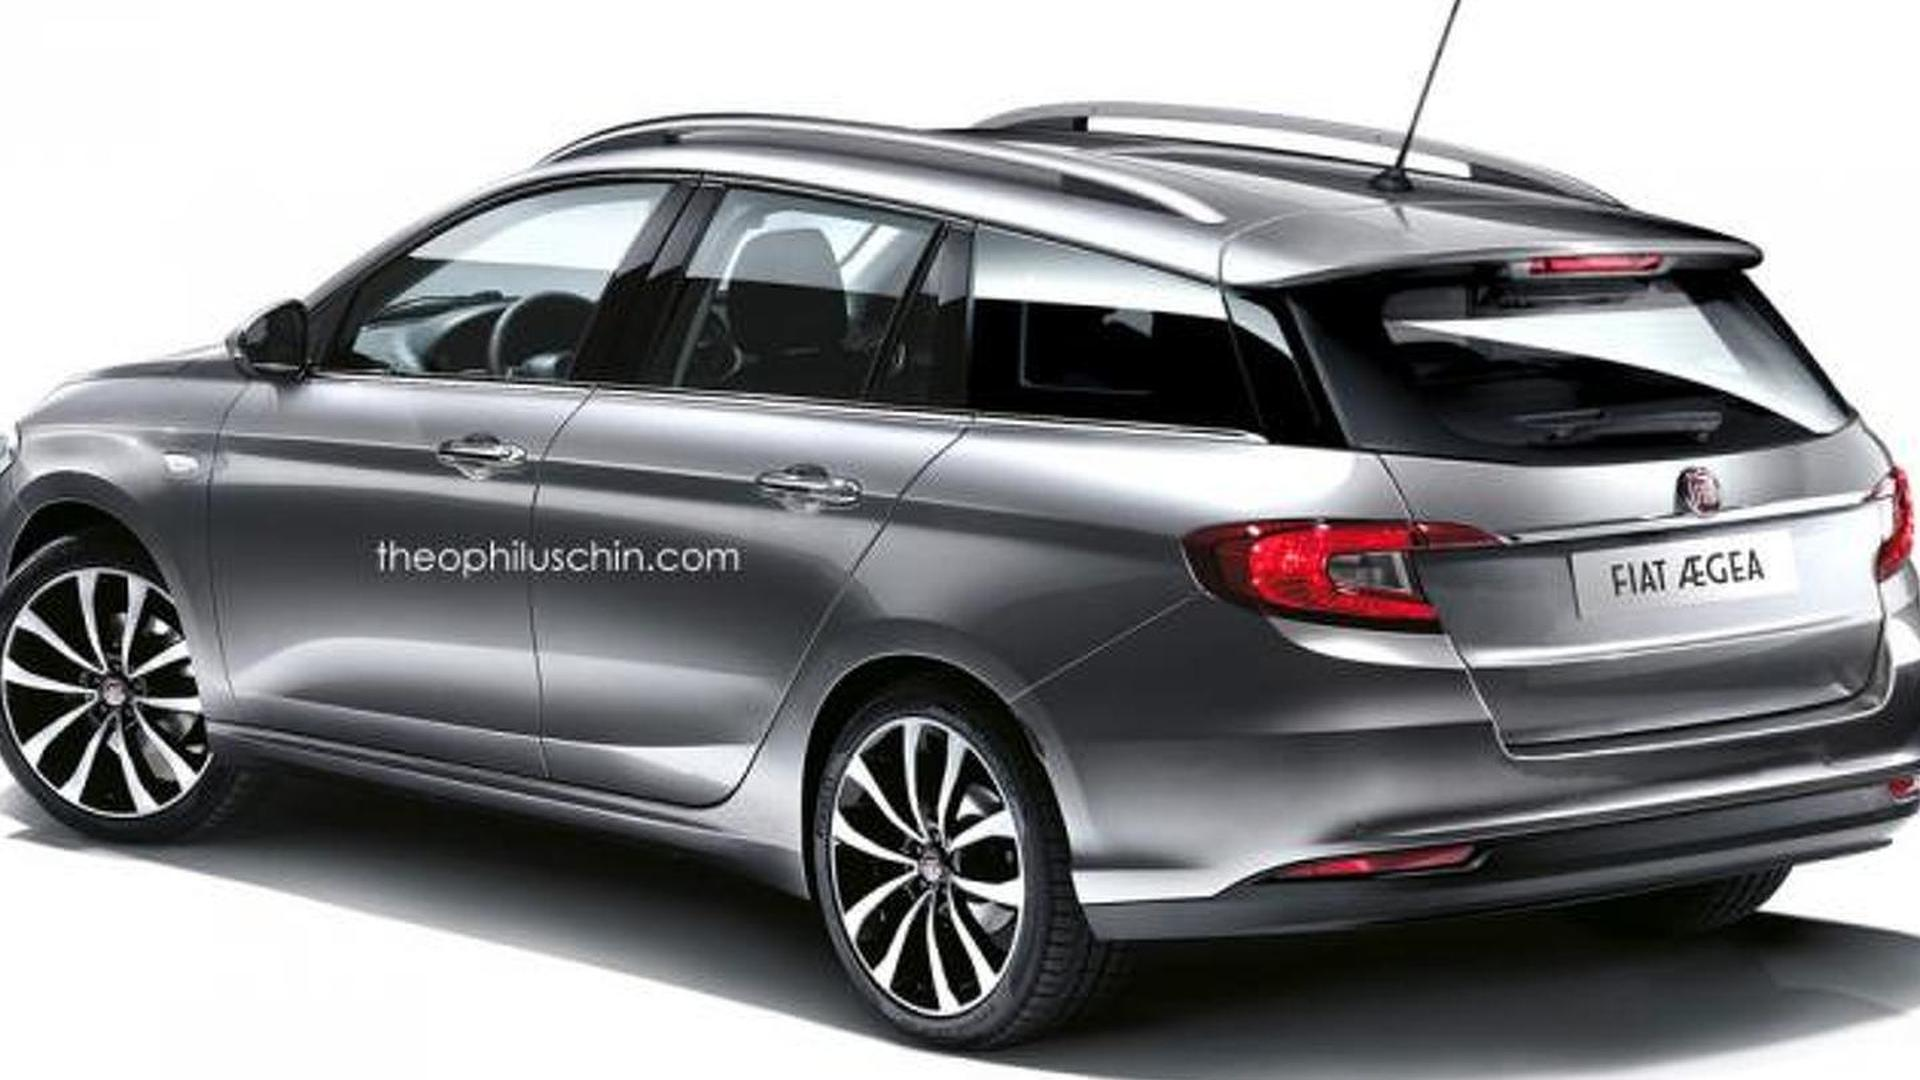 new specifications price fiat variants carbuyer reviews cutout prices hatchback